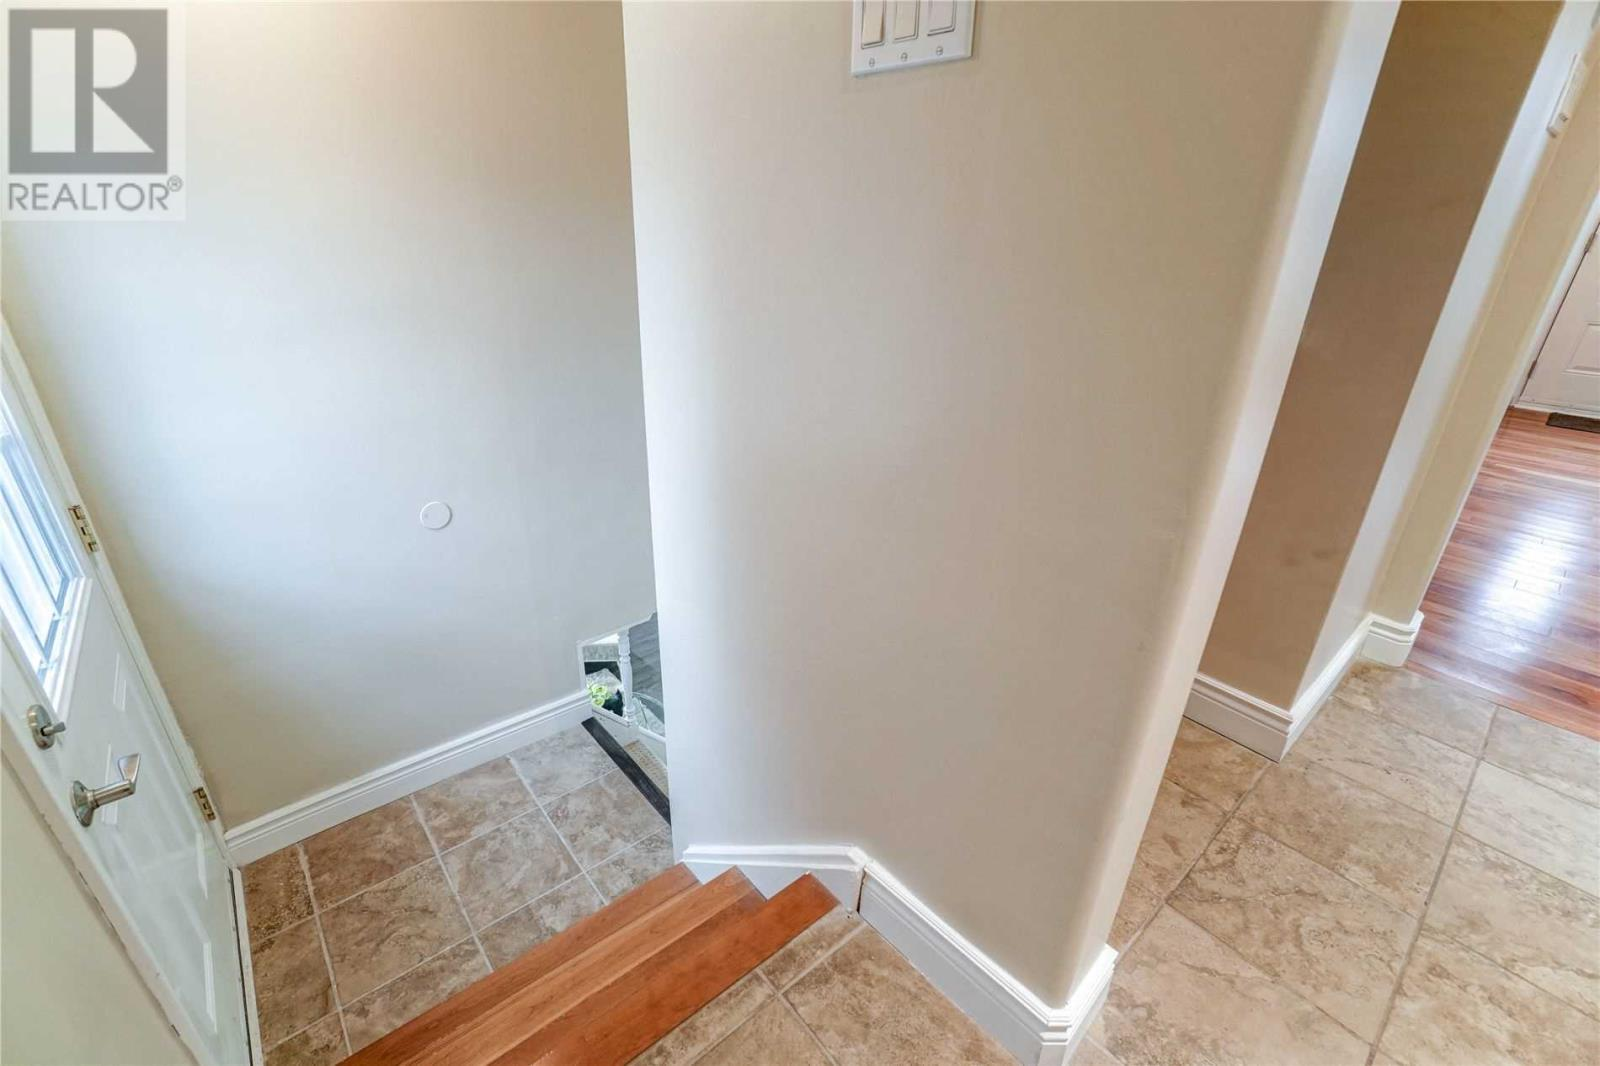 Listing W5190310 - Thumbmnail Photo # 16